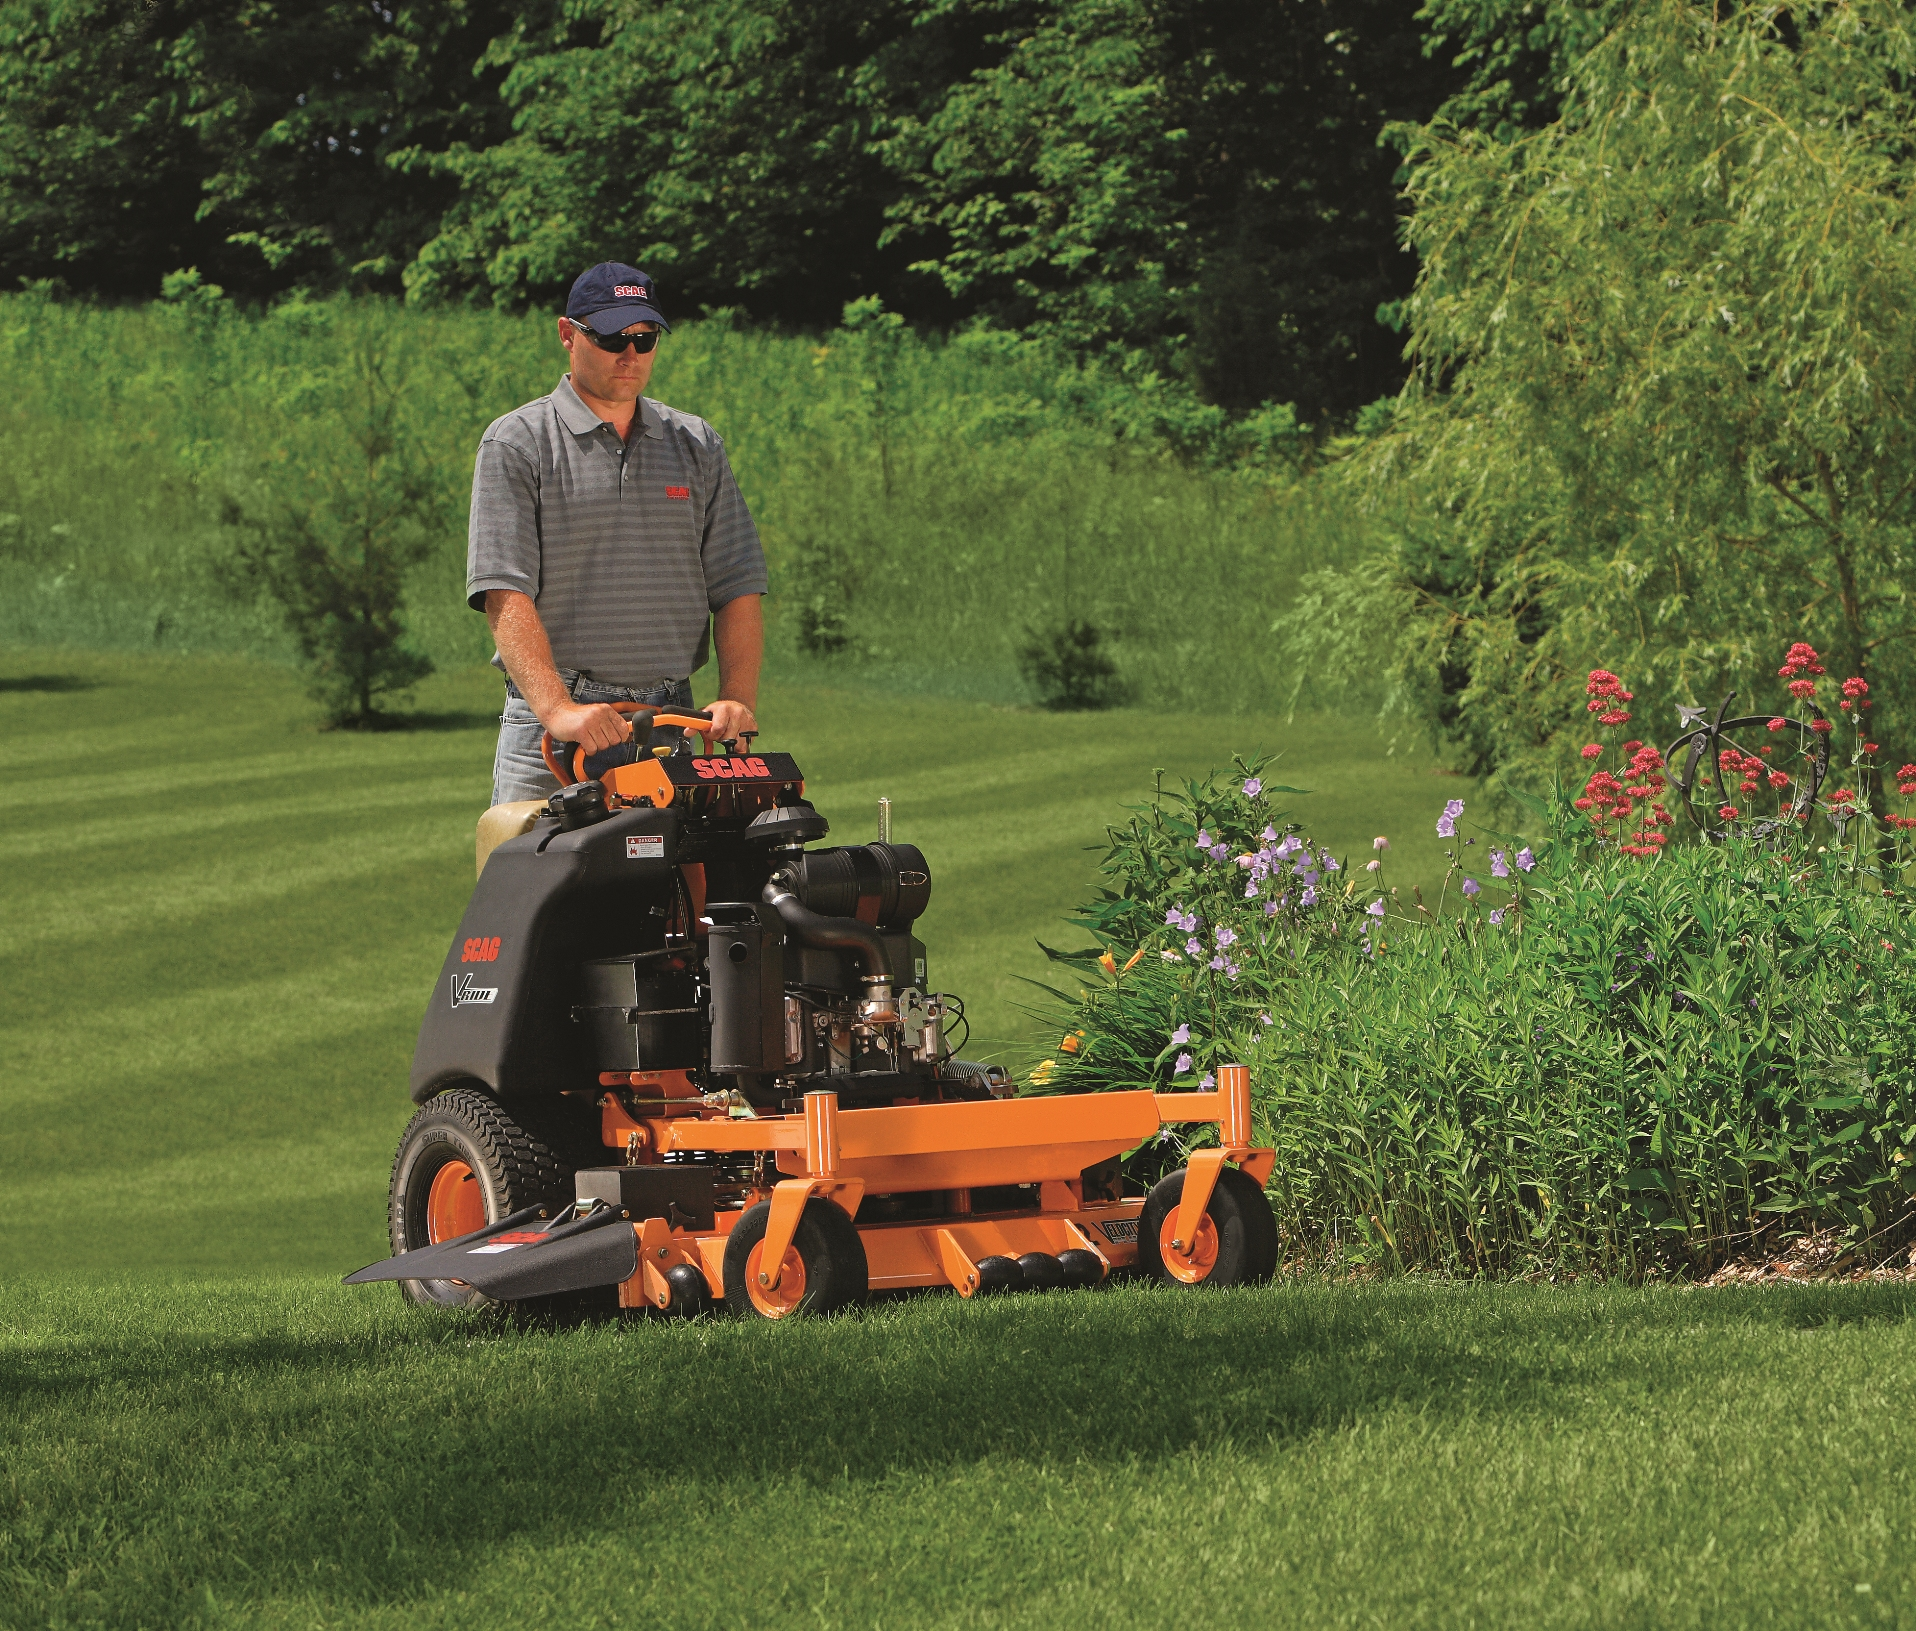 Scag Zero Turn Mowers V Ride Akron Ohio Gsa Equipment